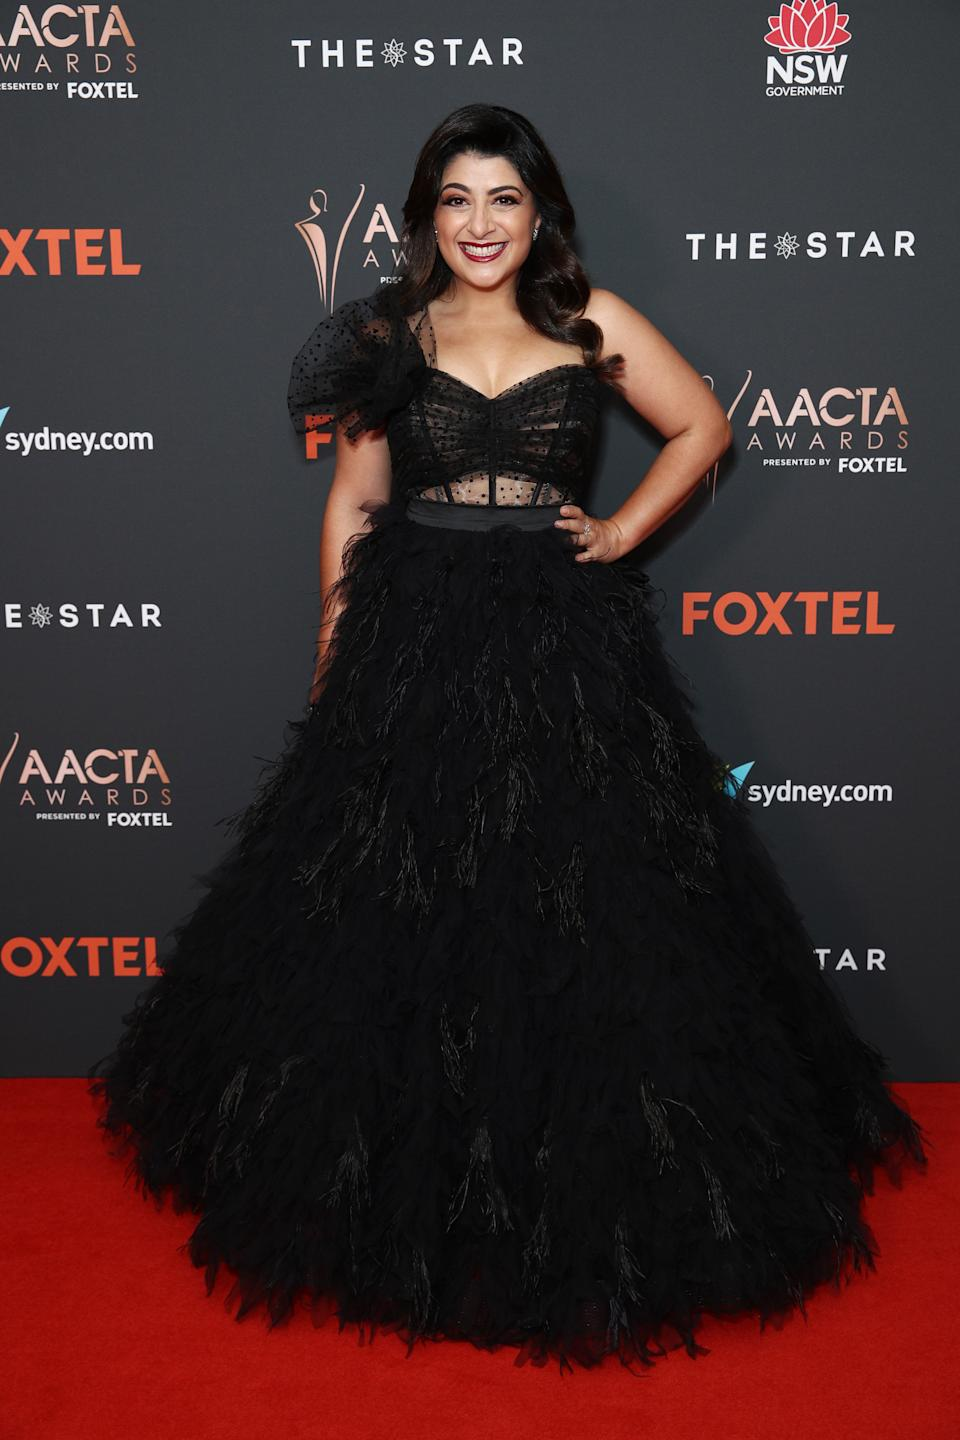 Susie Youssef arrives ahead of the 2020 AACTA Awards presented by Foxtel at The Star on November 30, 2020 in Sydney, Australia.